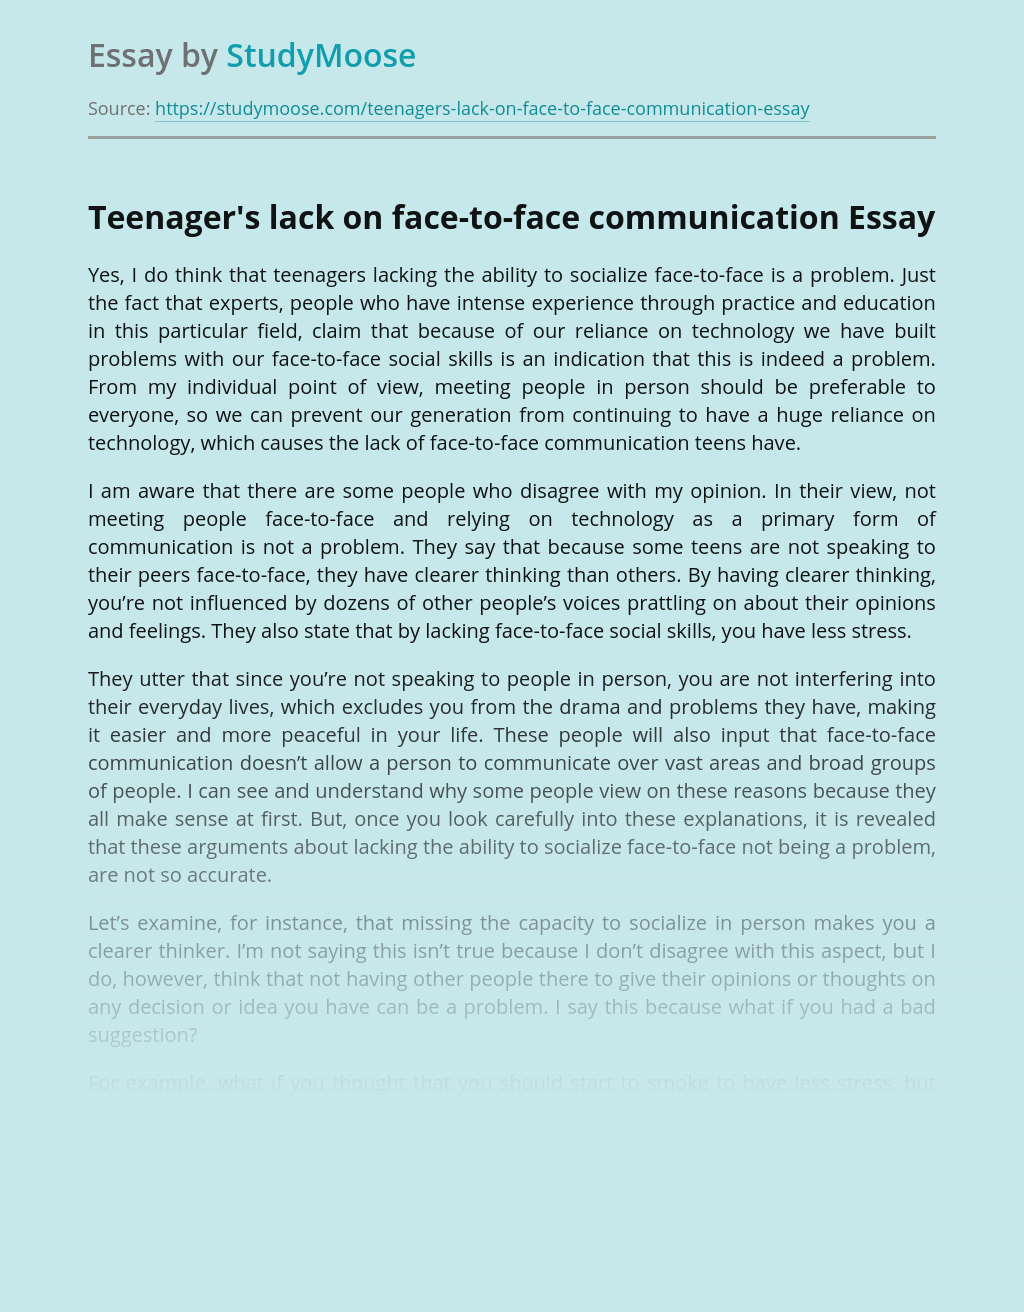 Teenager's lack on face-to-face communication